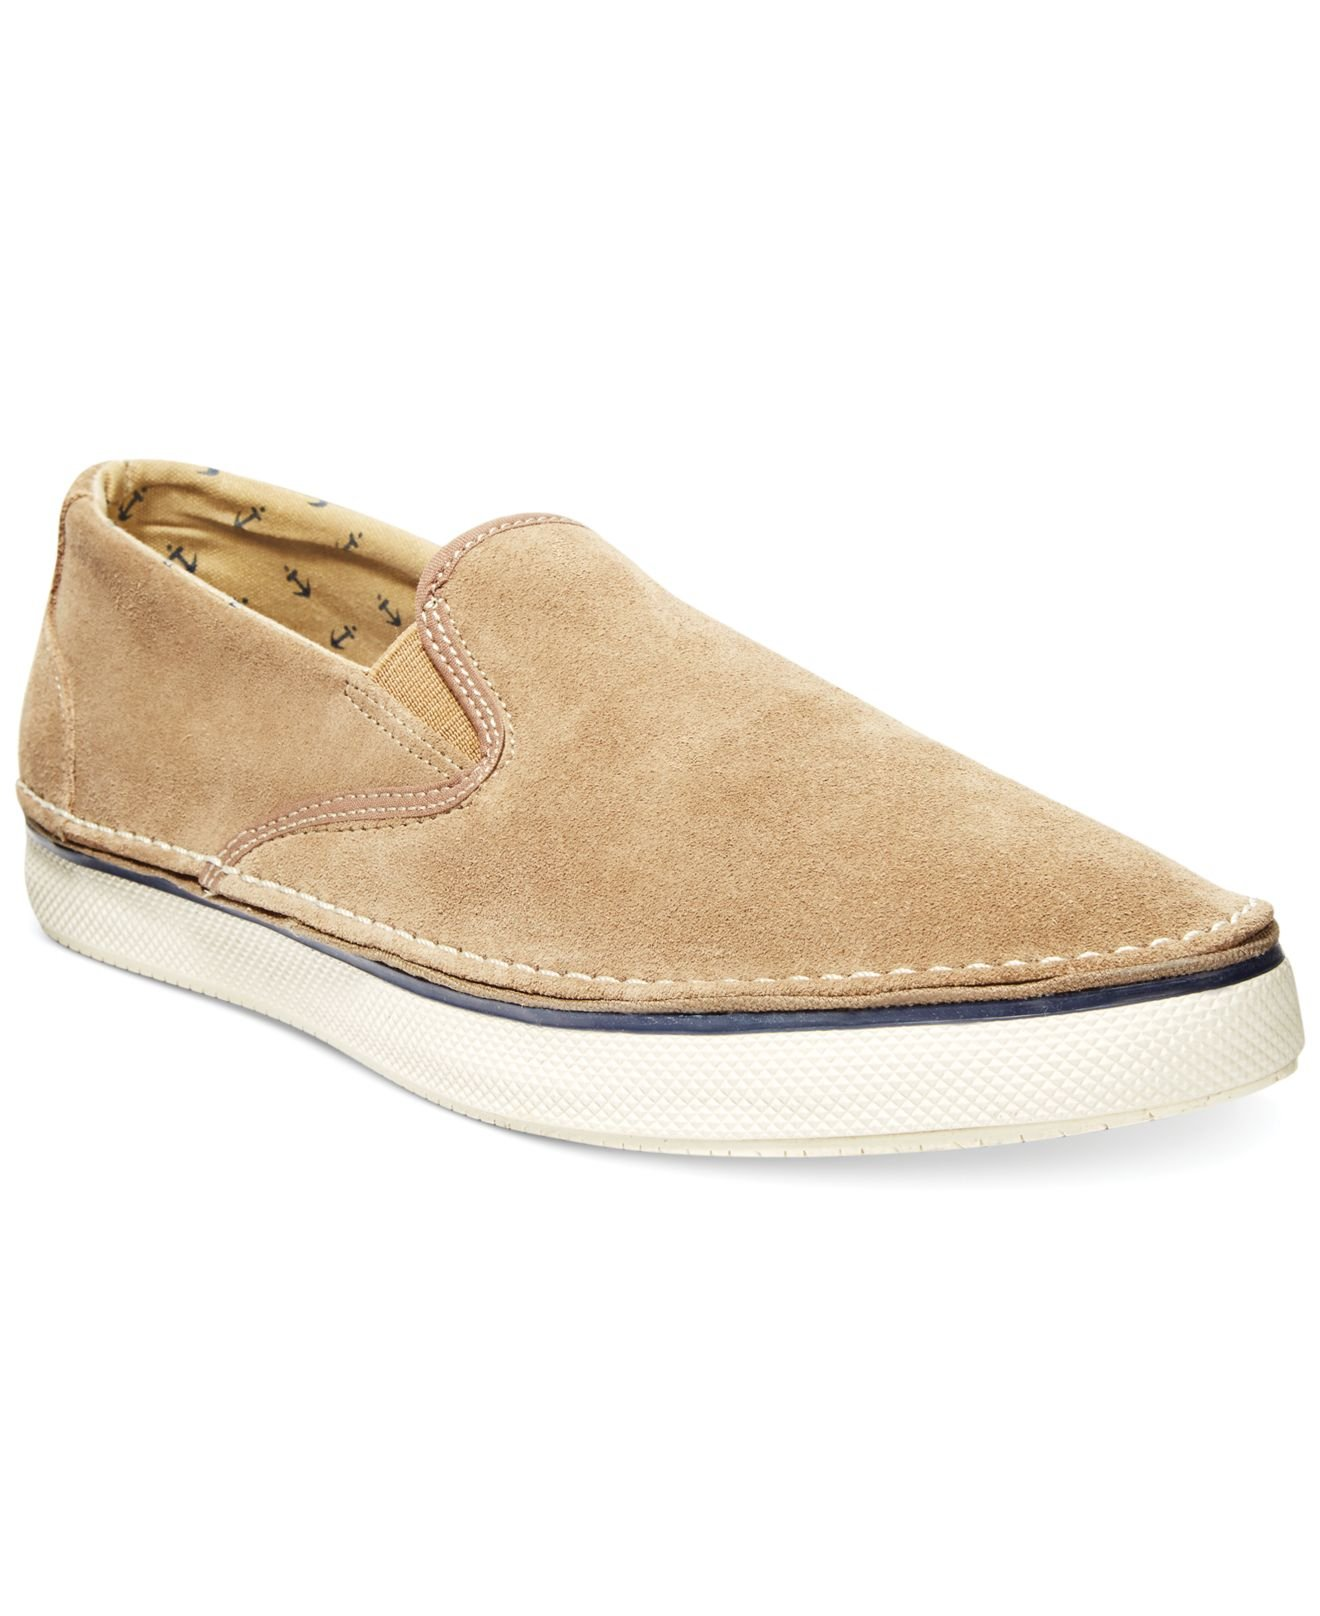 Sperry Top Sider Shoes Slip On